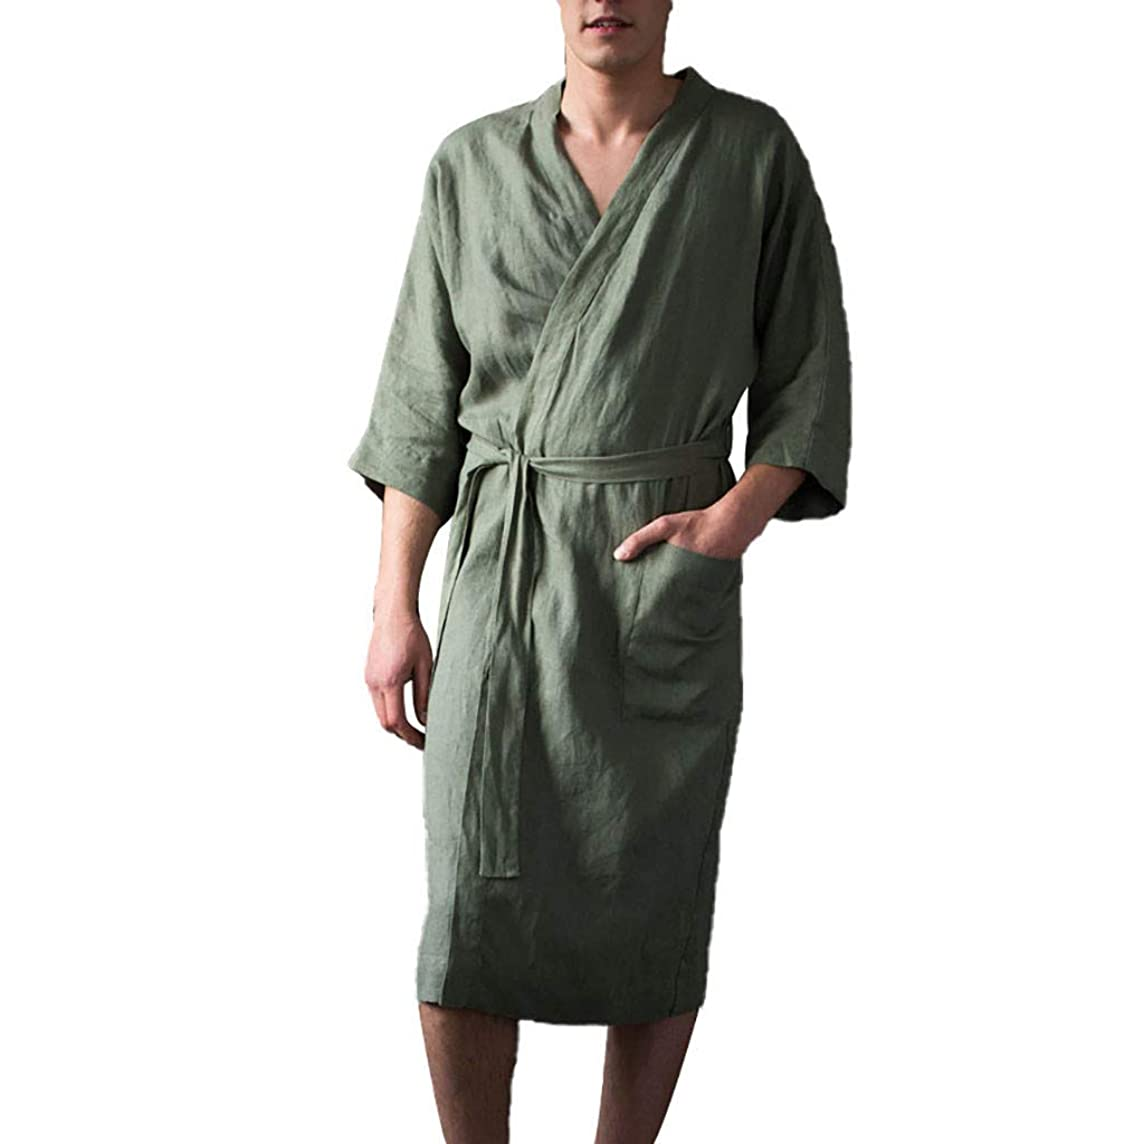 Mr.Macy Men's Short Sleeved Long Bathrobe Home Clothes Solid Color Linen Pajamas Robe